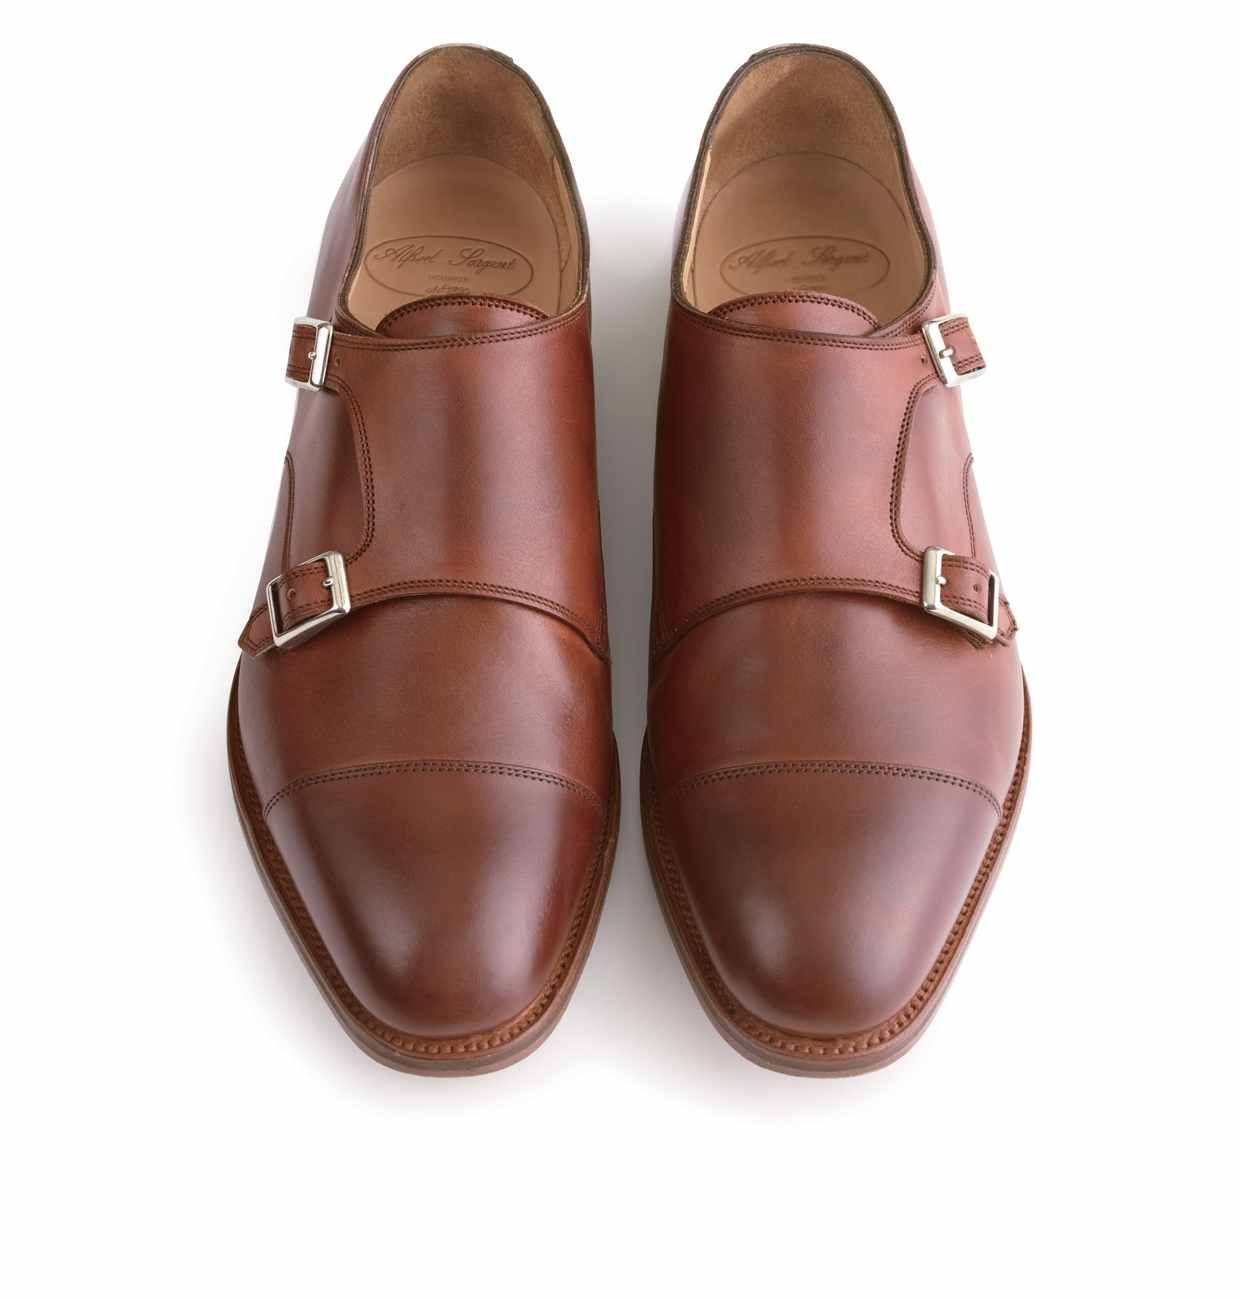 a7e3f6d4fc051 Alfred Sargent for J.Crew Double Monk Strap Shoes | Guy looks and ...